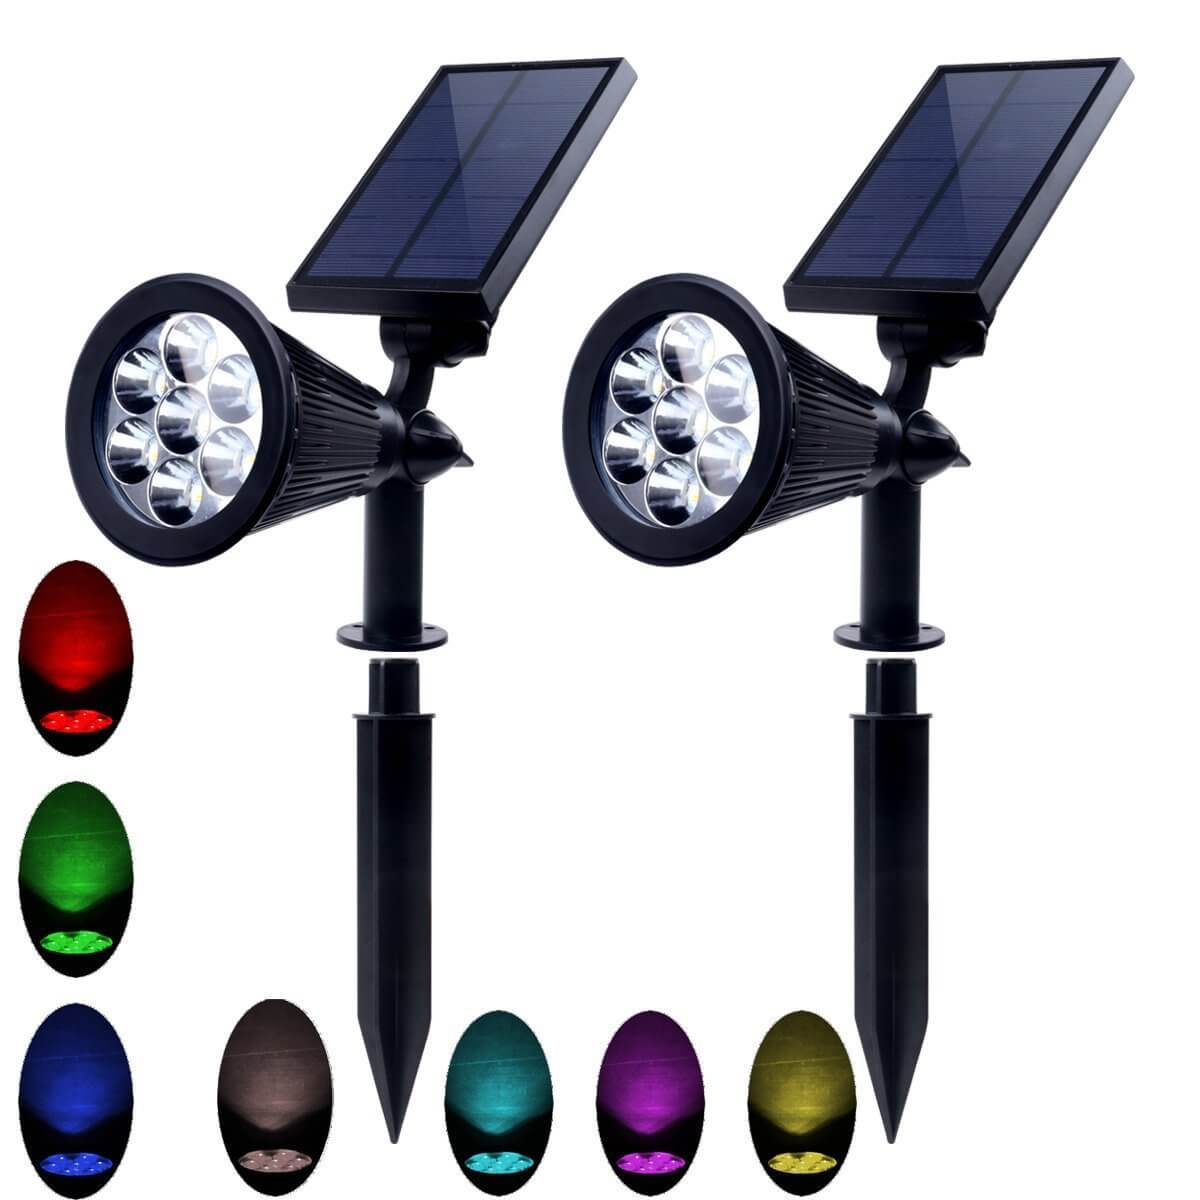 Discoloration 7 Rgb Color Led Lamp Beads Outdoor Garden